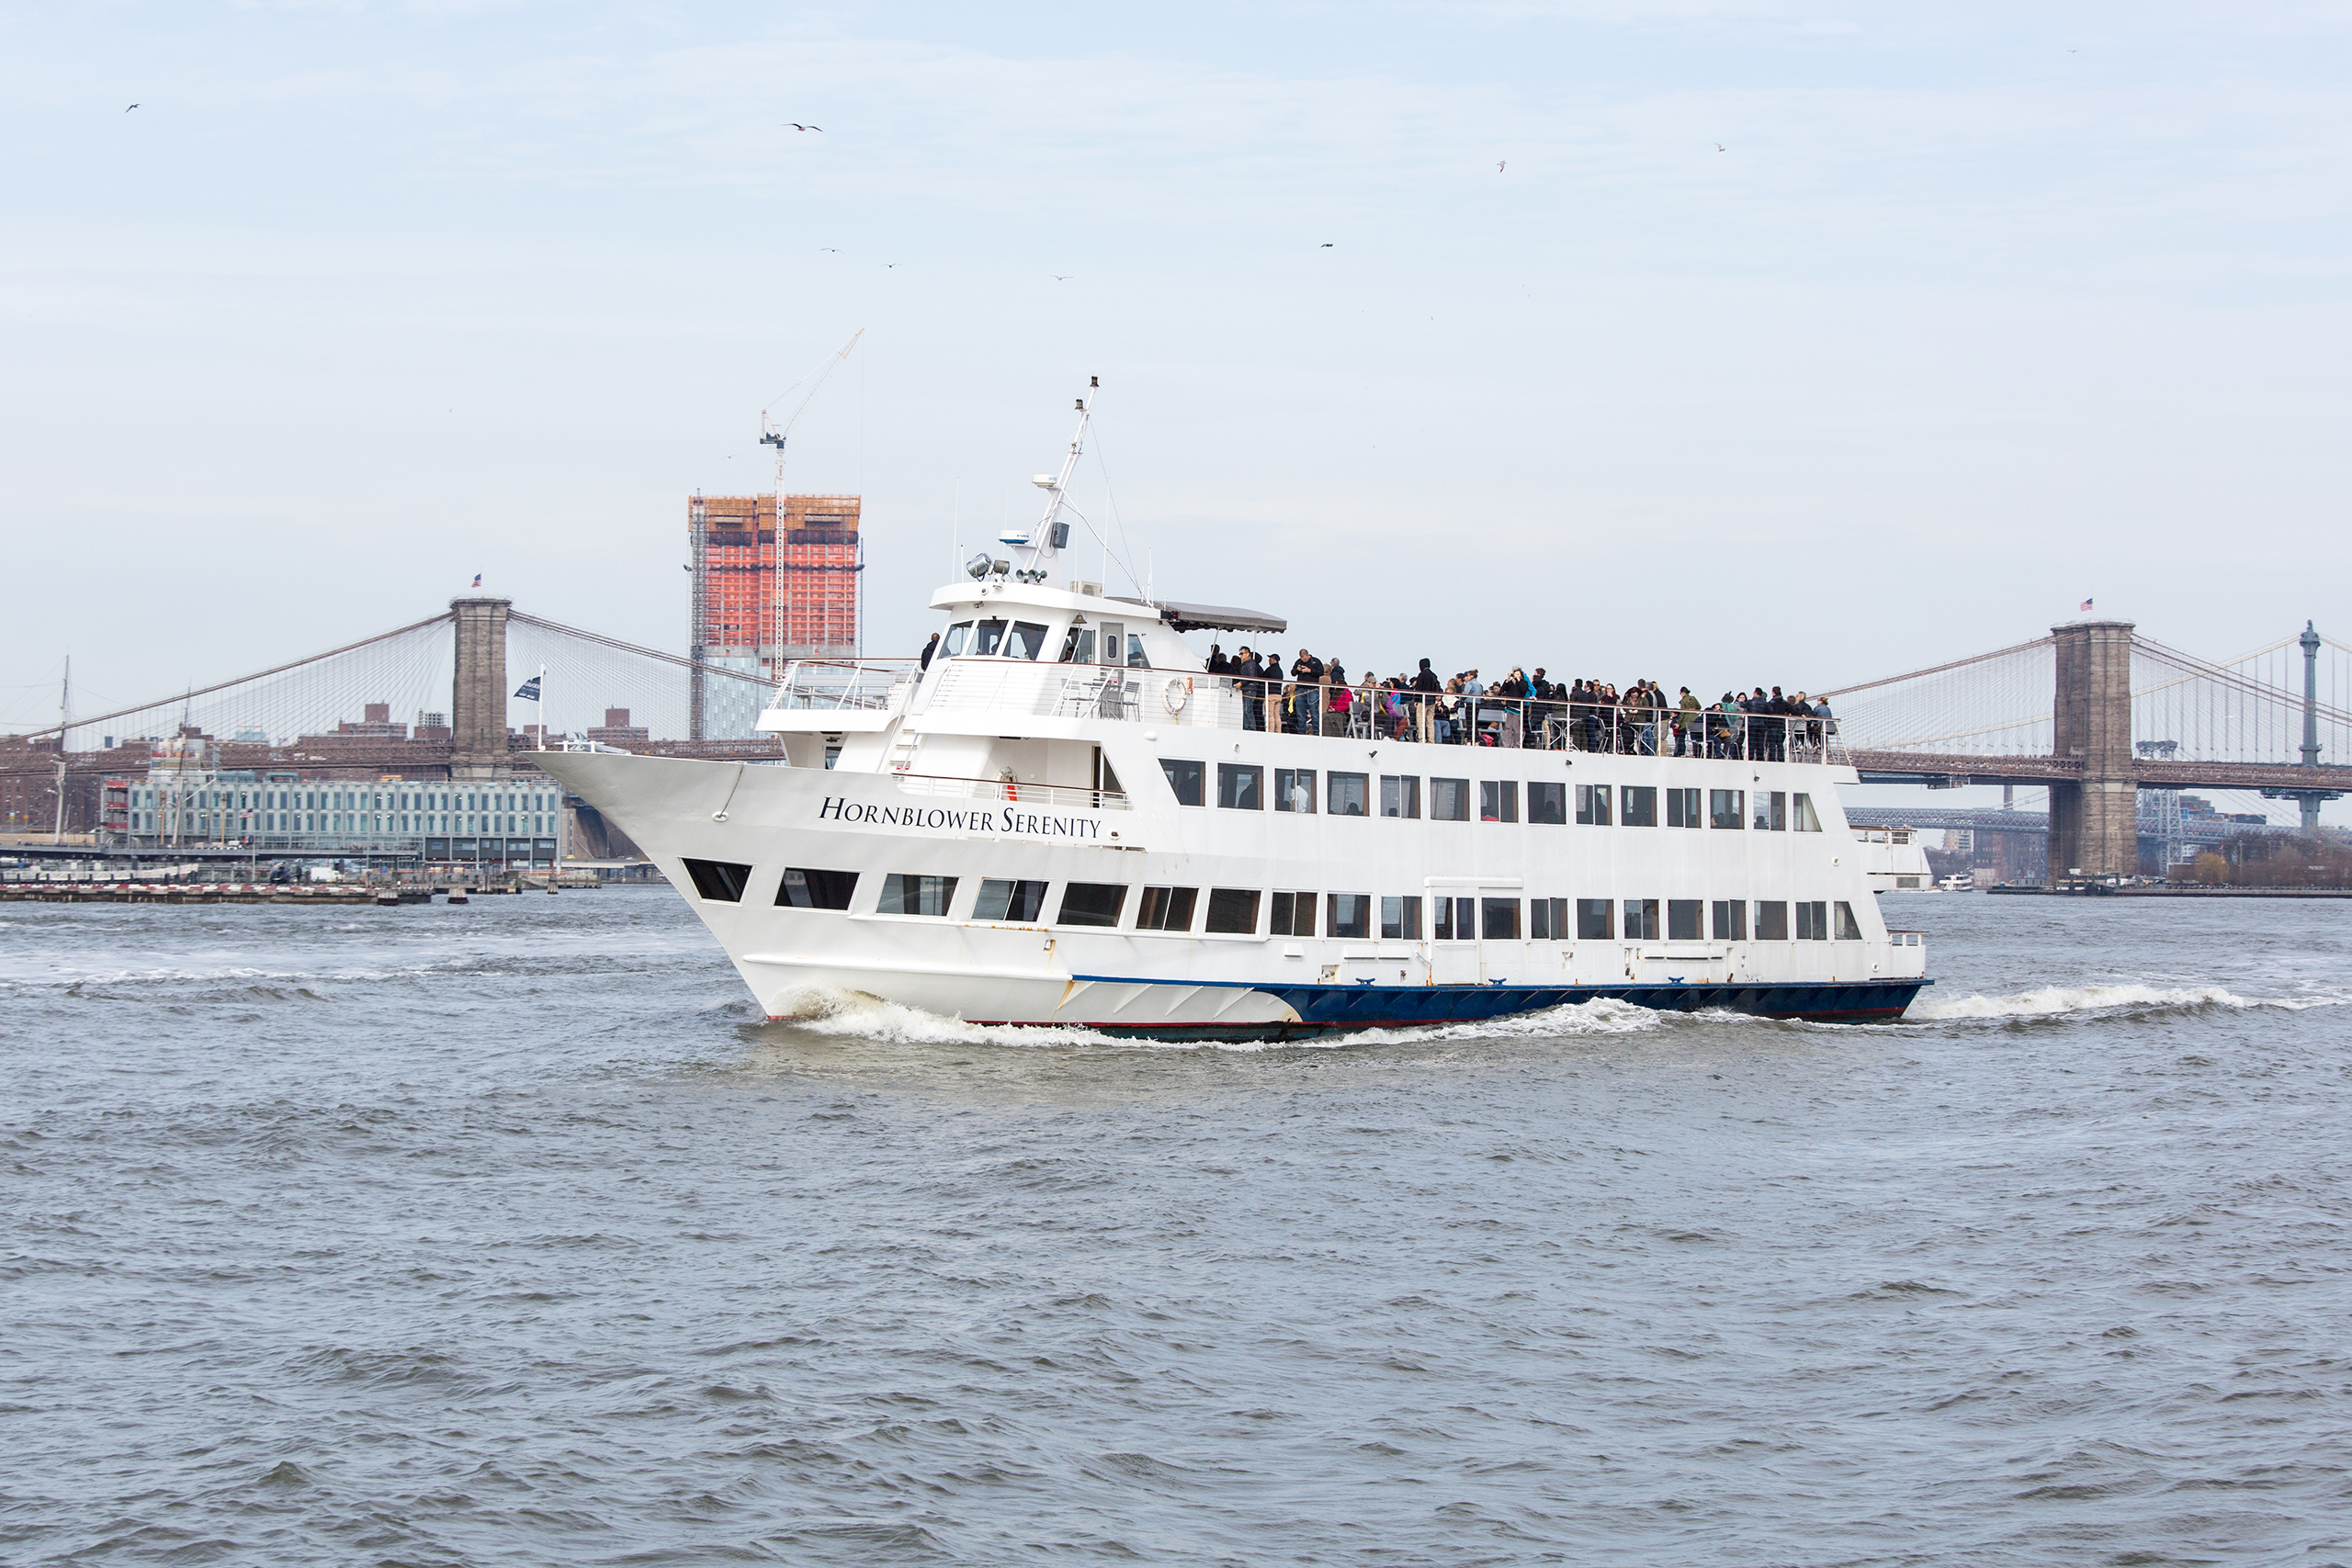 All the ferries you can take to beaches near NYC